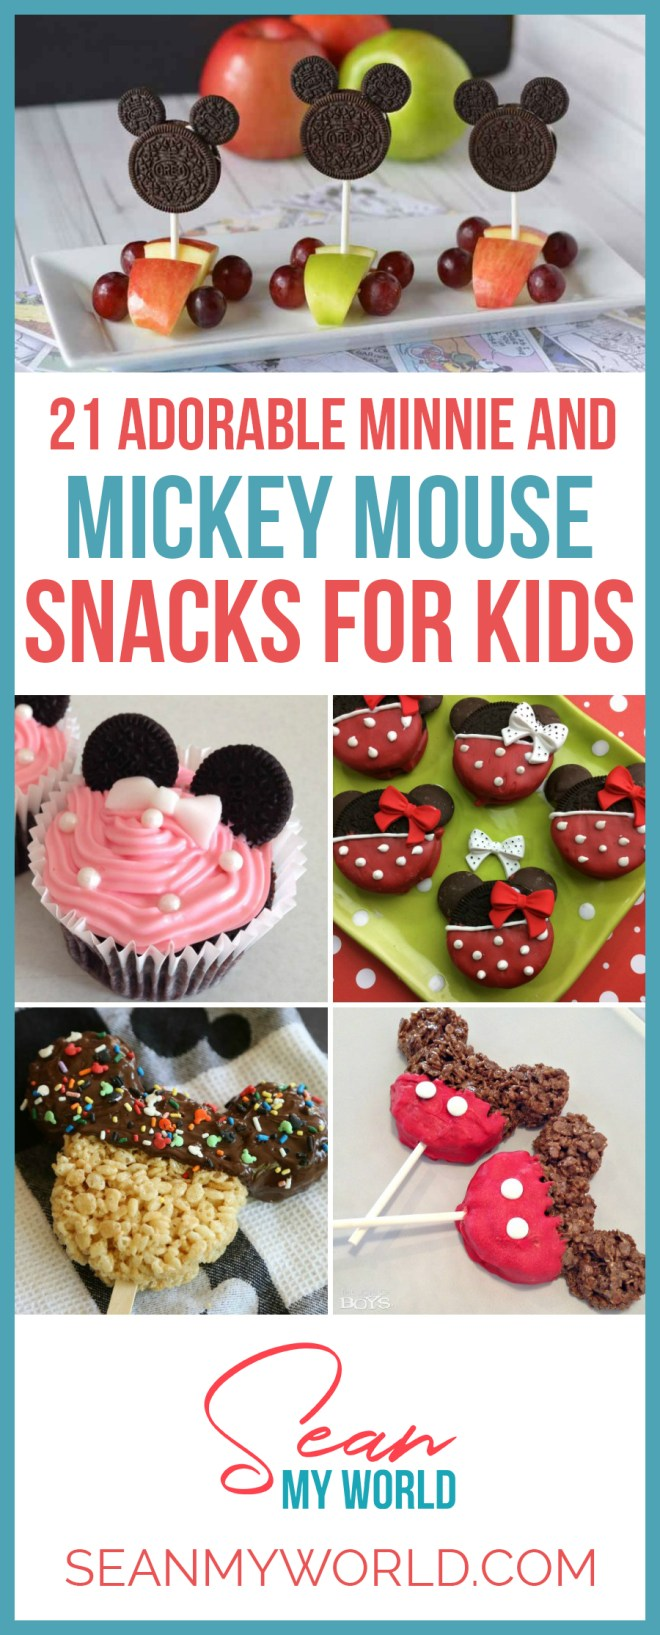 Looking for Mickey Mouse snack ideas for kids? Here are 21 adorable Minnie Mouse and Mickey Mouse snack ideas that kids will love.